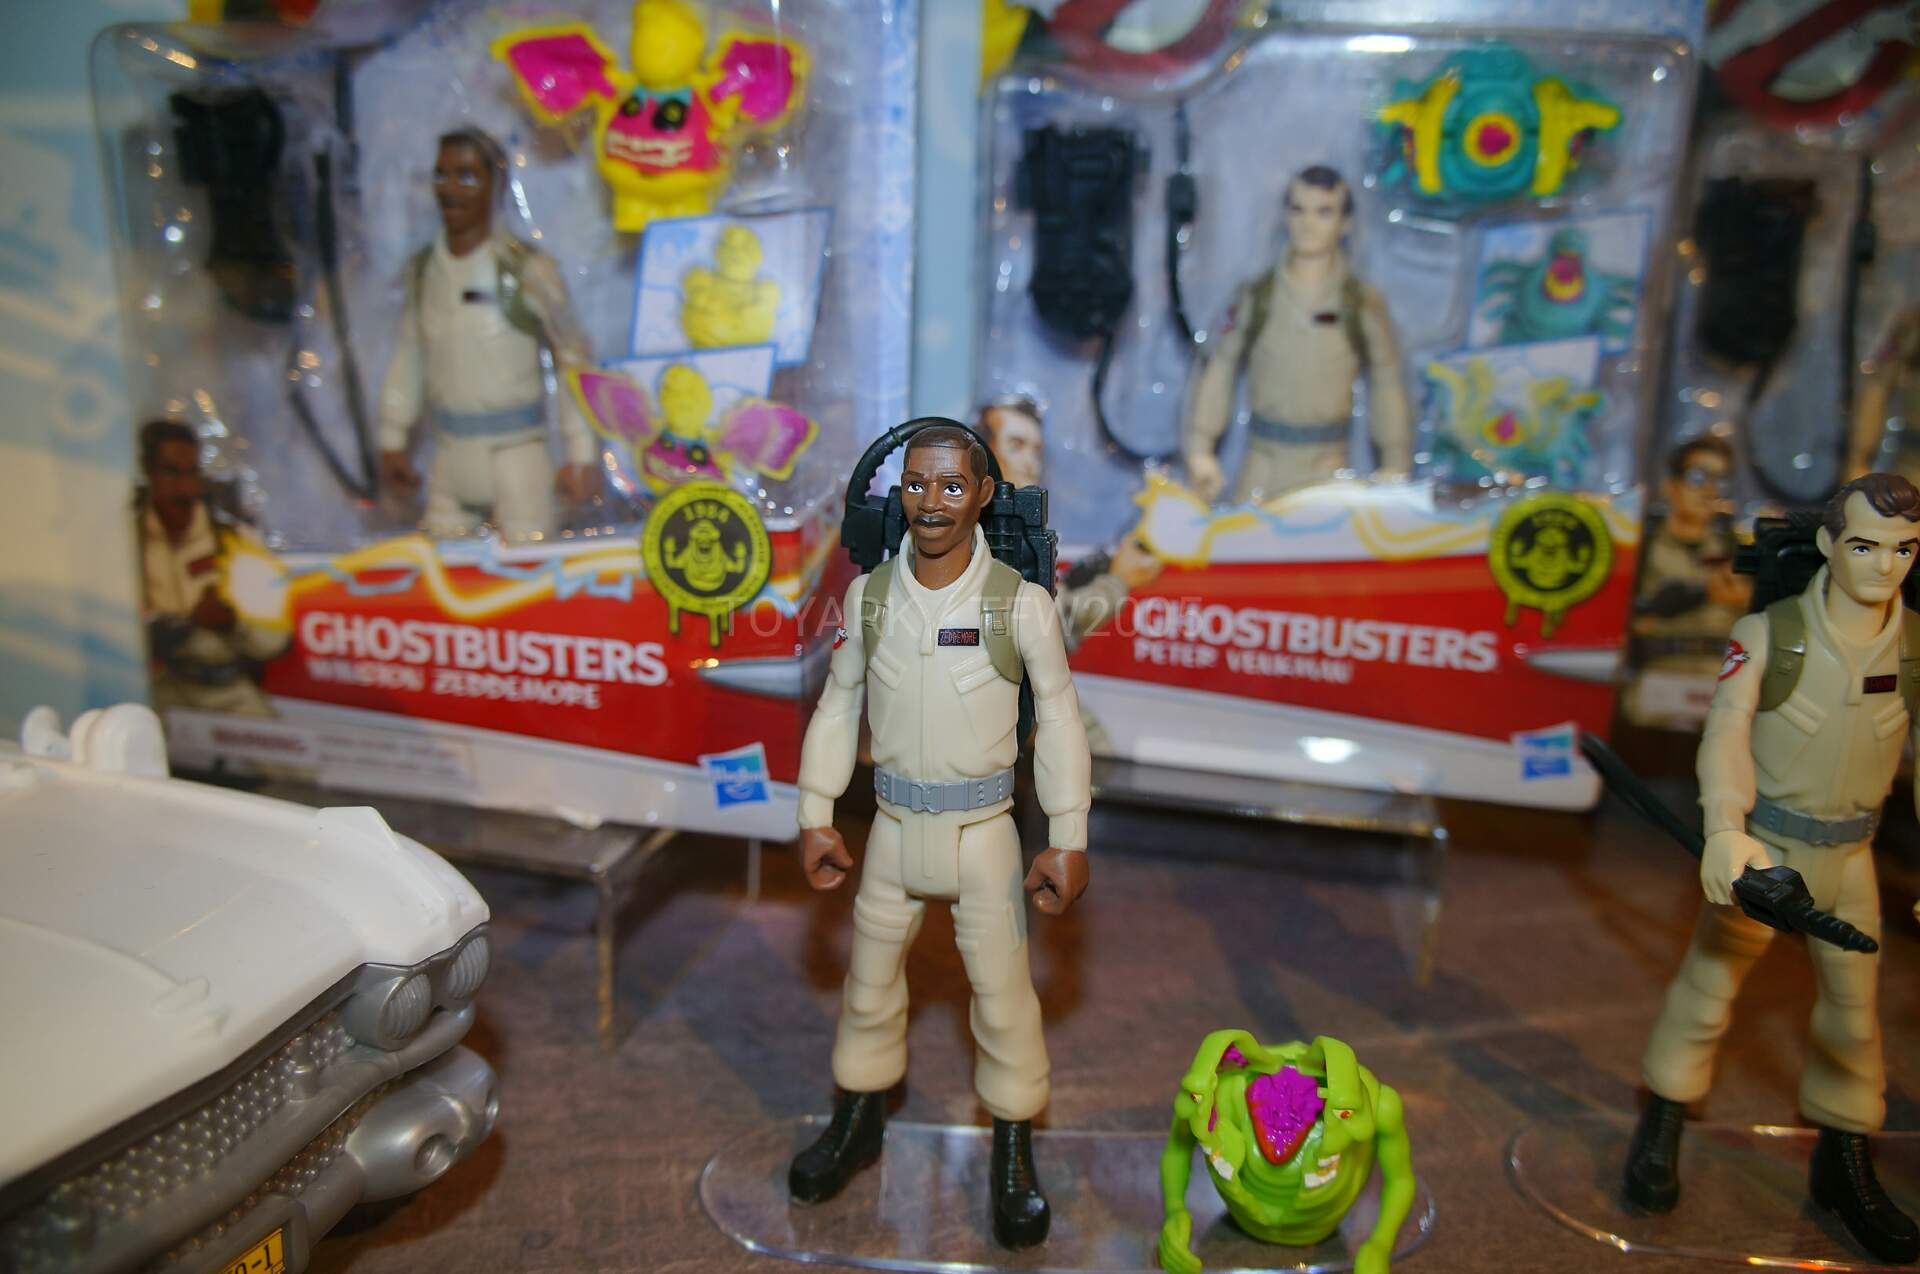 Toy-Fair-2020-Hasbro-Ghostbusters-063.jpg